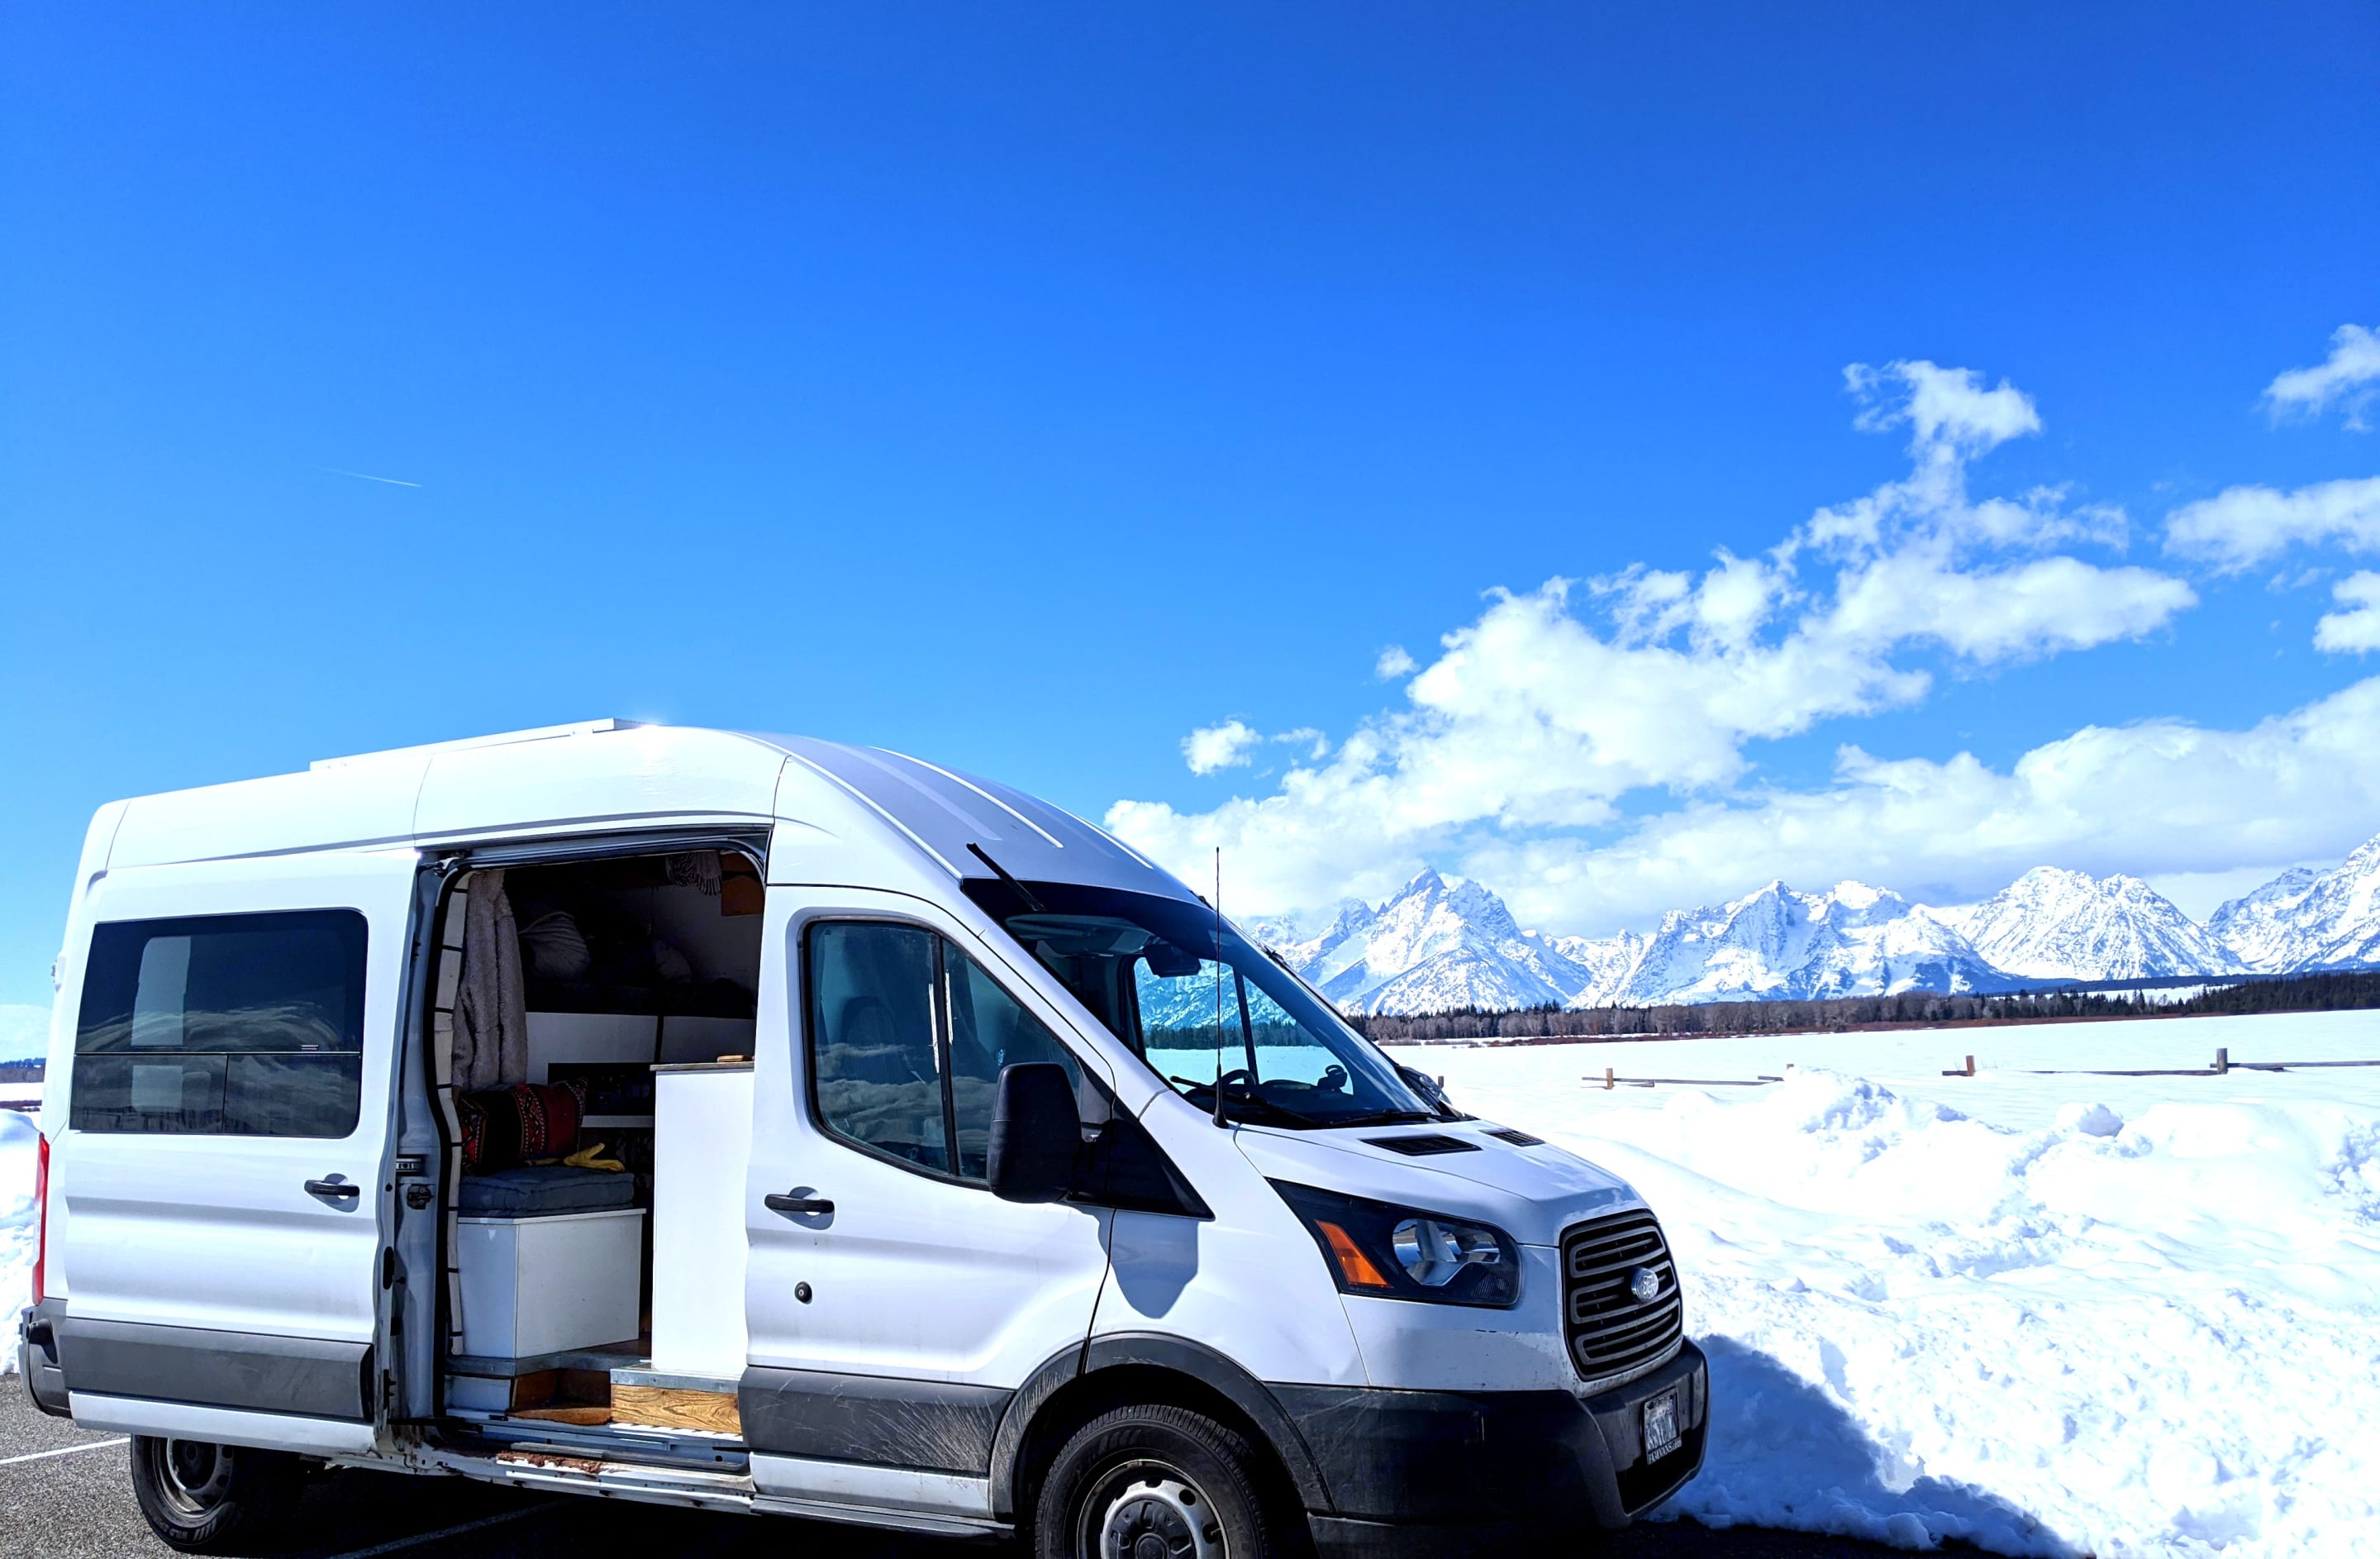 Vanny in the Grand Tetons, WY. Ford Transit - High Roof 2015